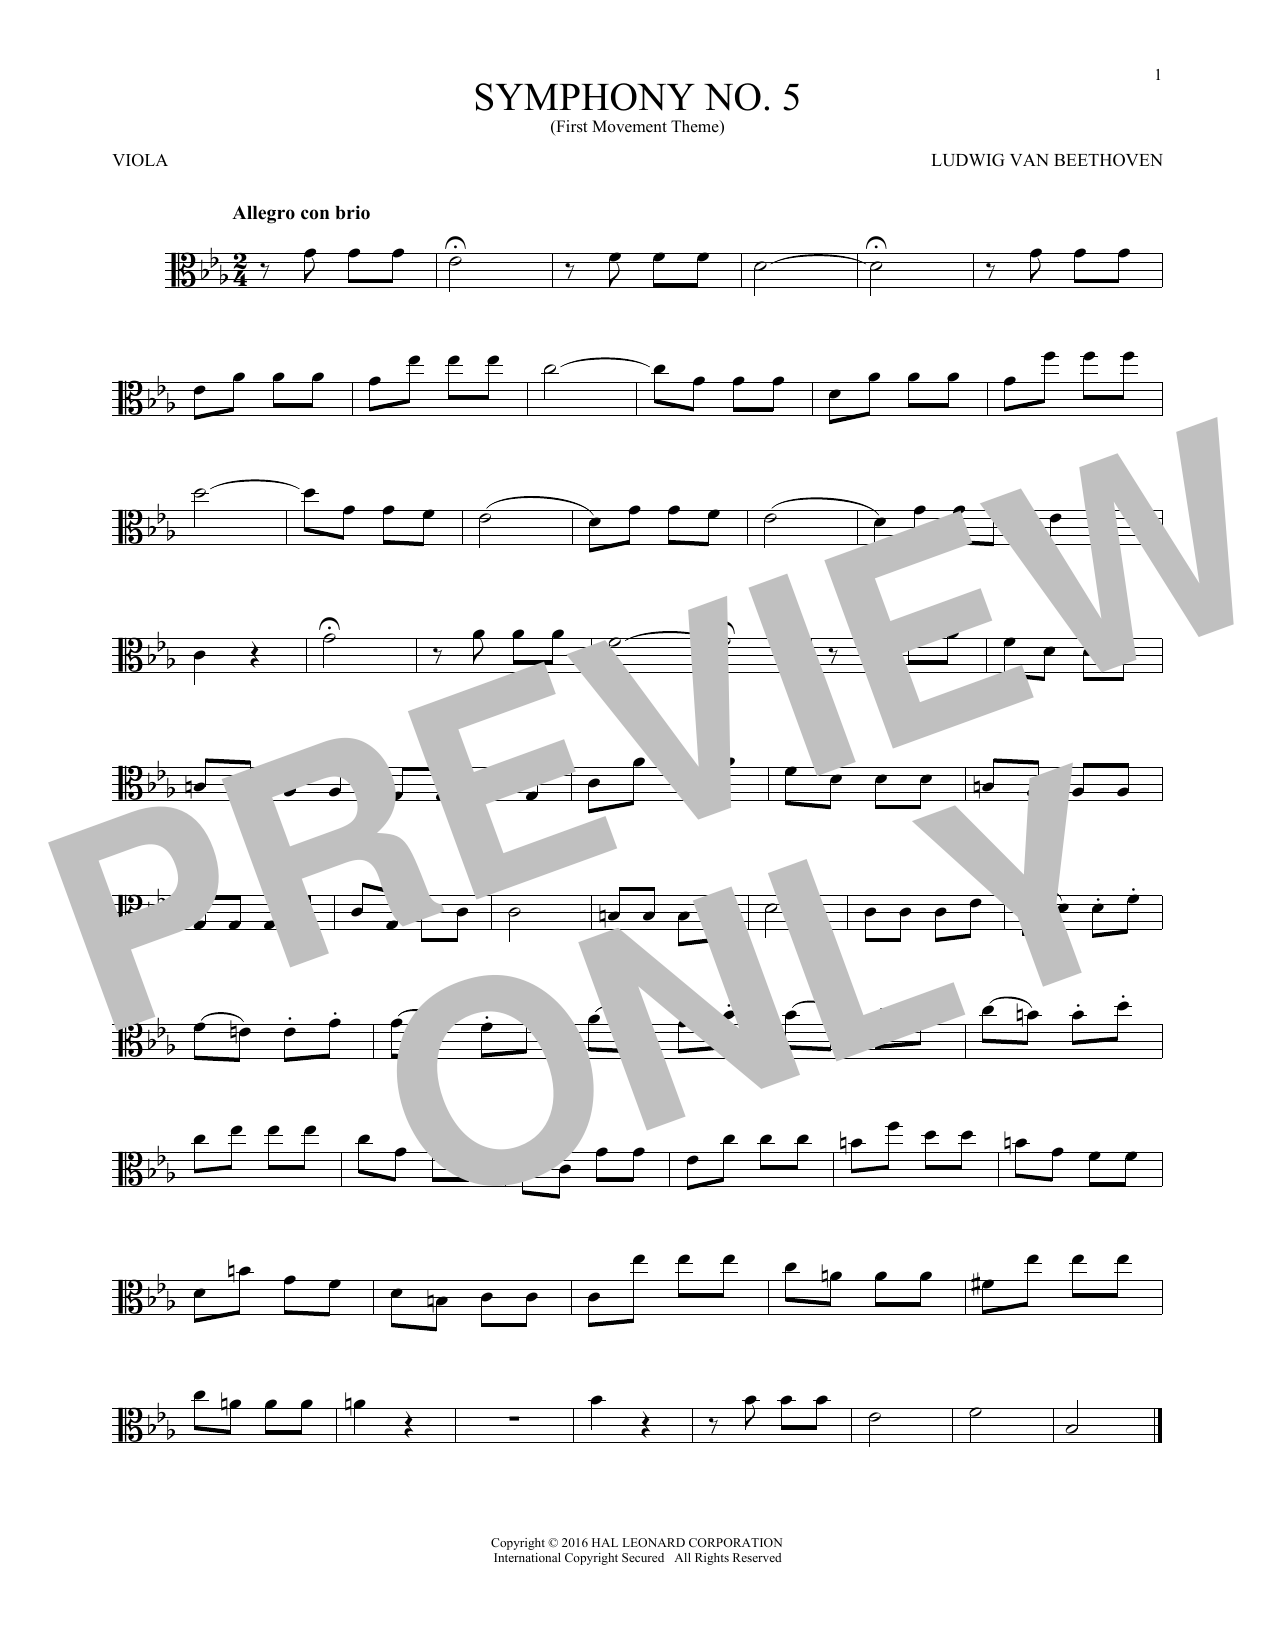 Symphony No. 5 In C Minor, First Movement Excerpt (Viola Solo)